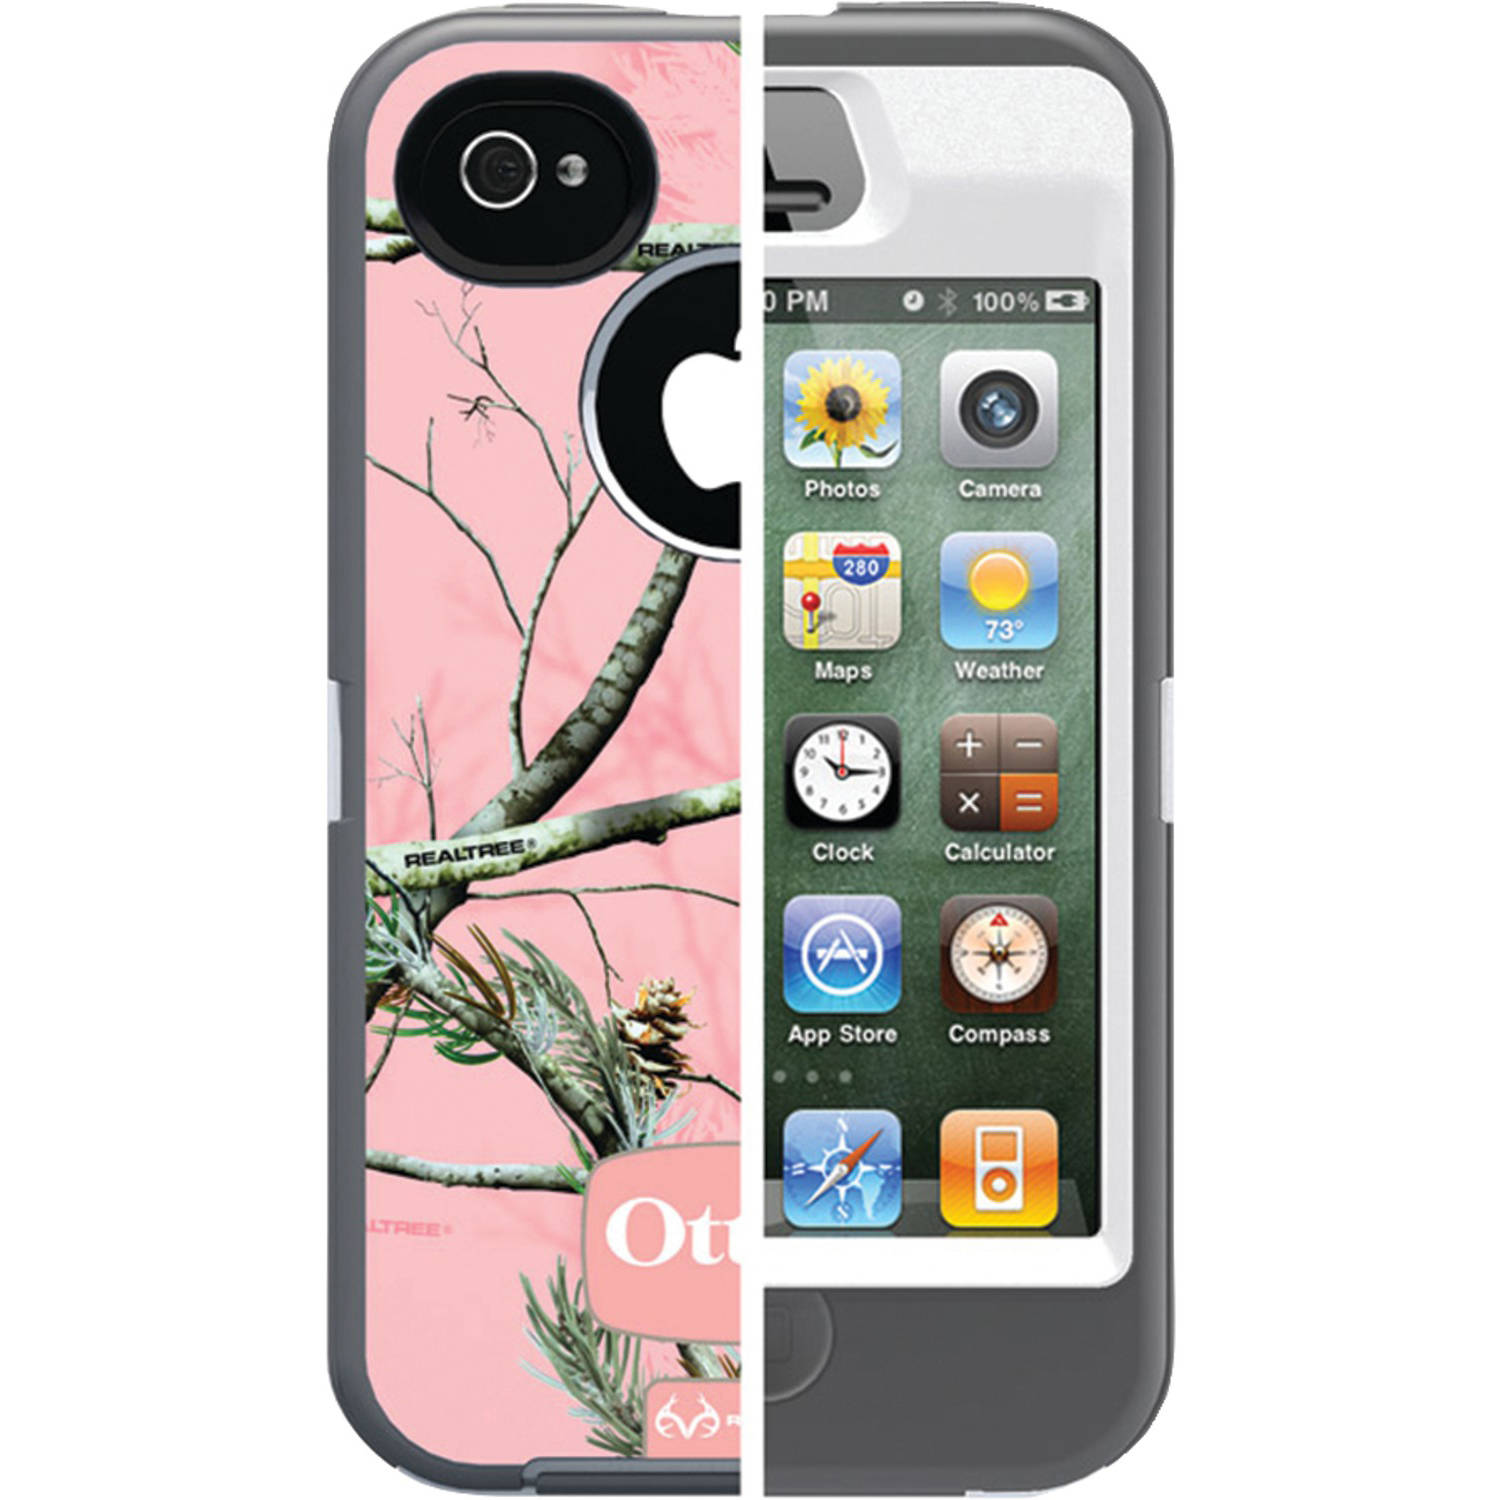 OtterBox Apple iPhone 4/4s Case Defender Series